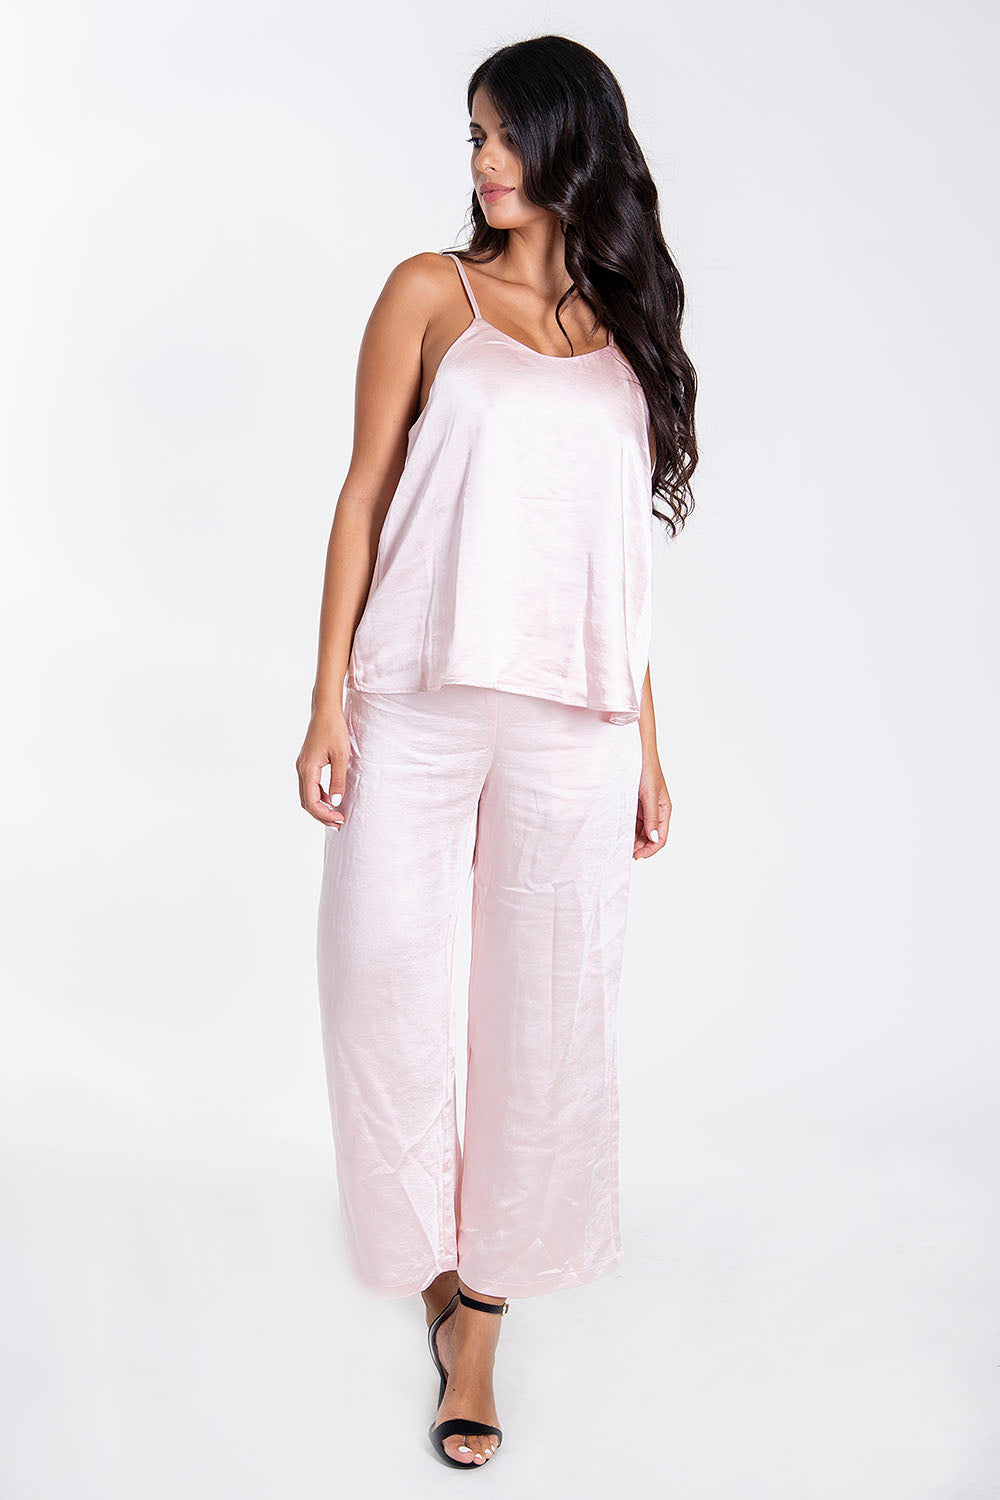 Sh baby pink silk cami top co-ord